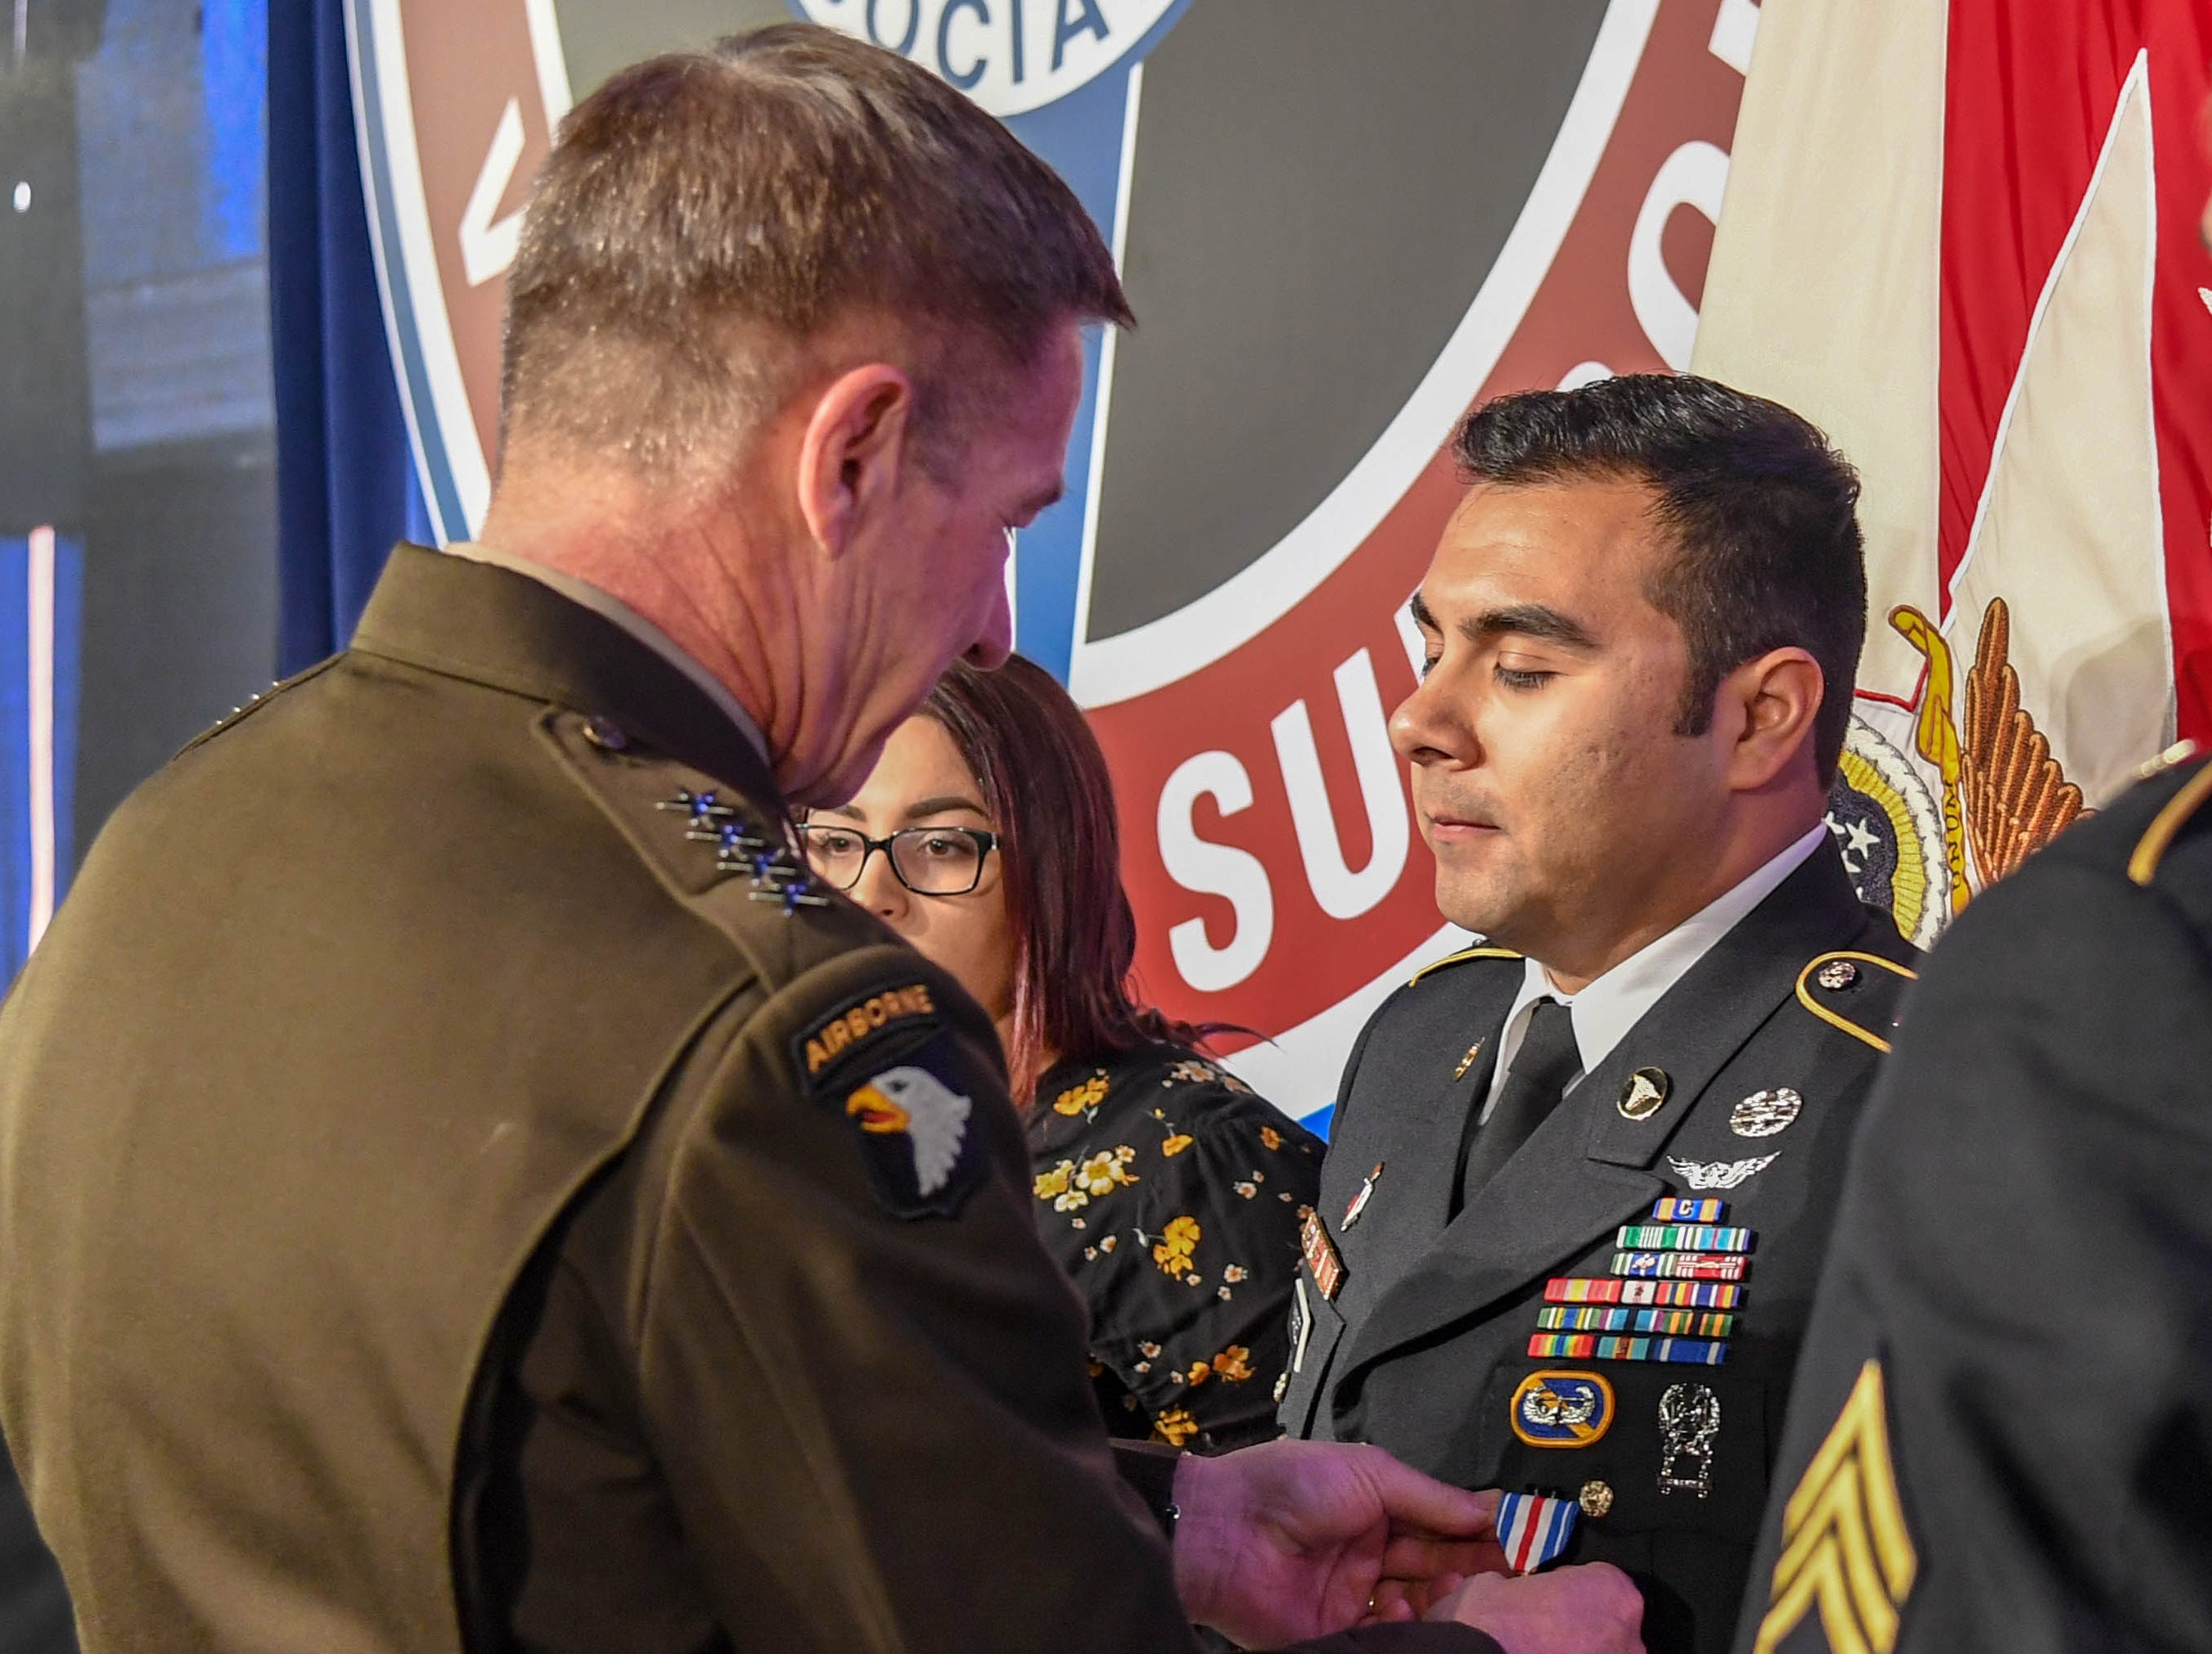 Sgt. Armando Yanez, 101st Combat Aviation Brigade, receives the Silver Star on April 16, 2019, for heroism in combat during a medevac mission last year in Afghanistan.